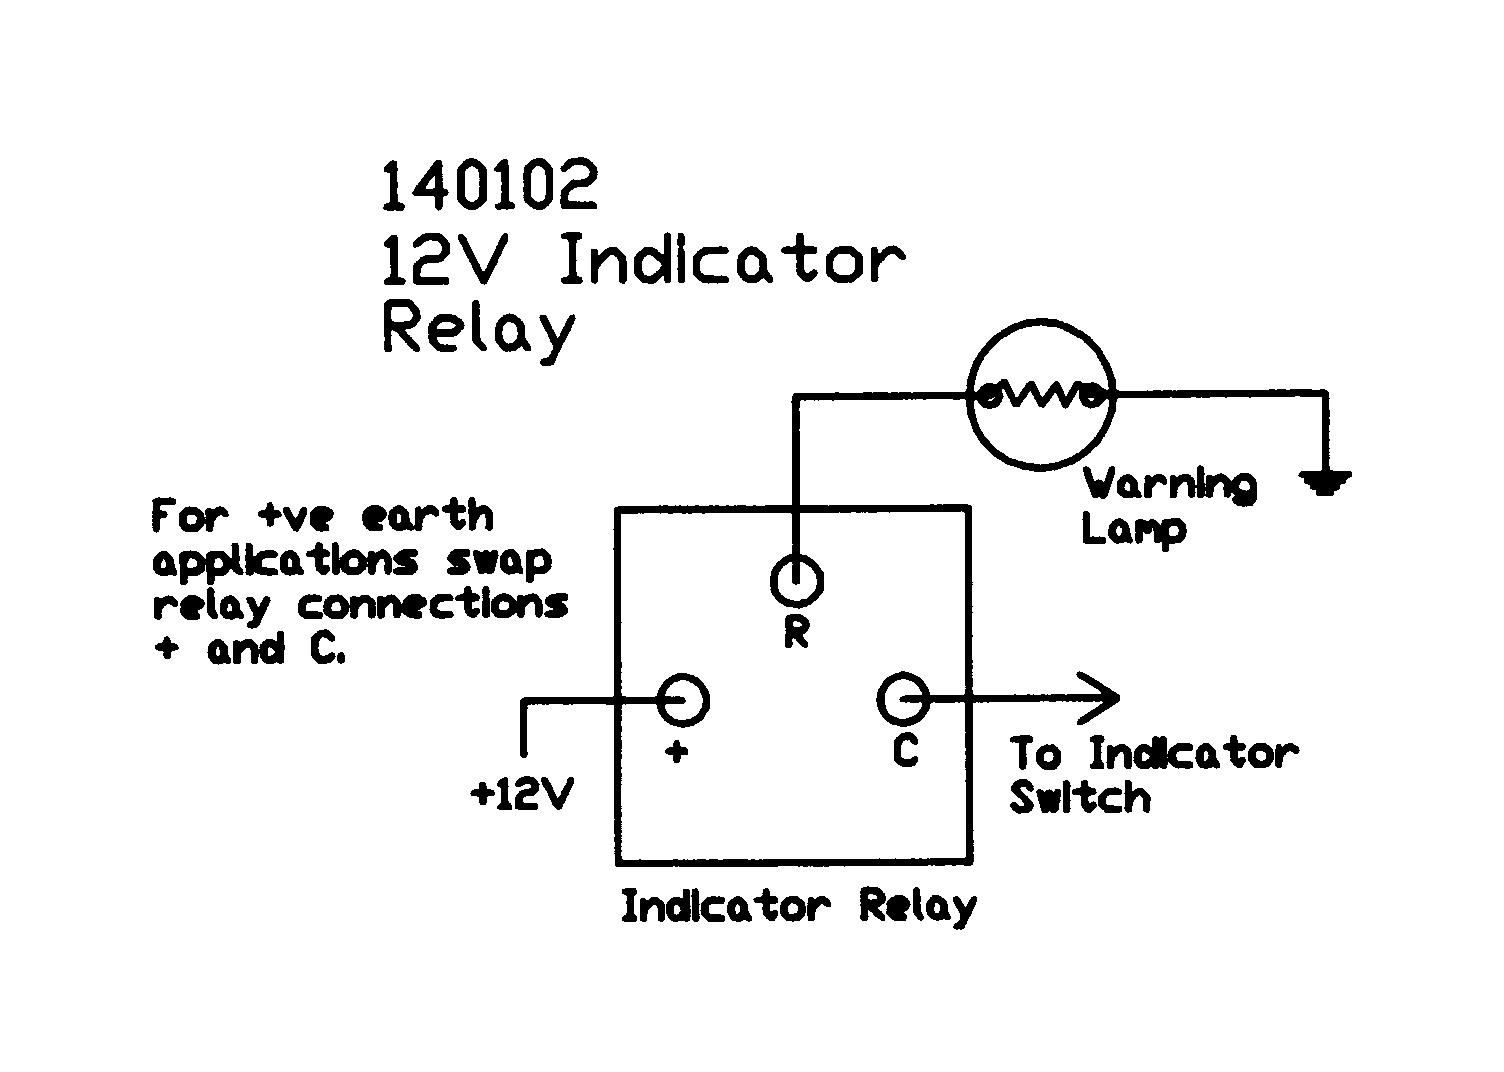 hight resolution of 140102 wiring diagram